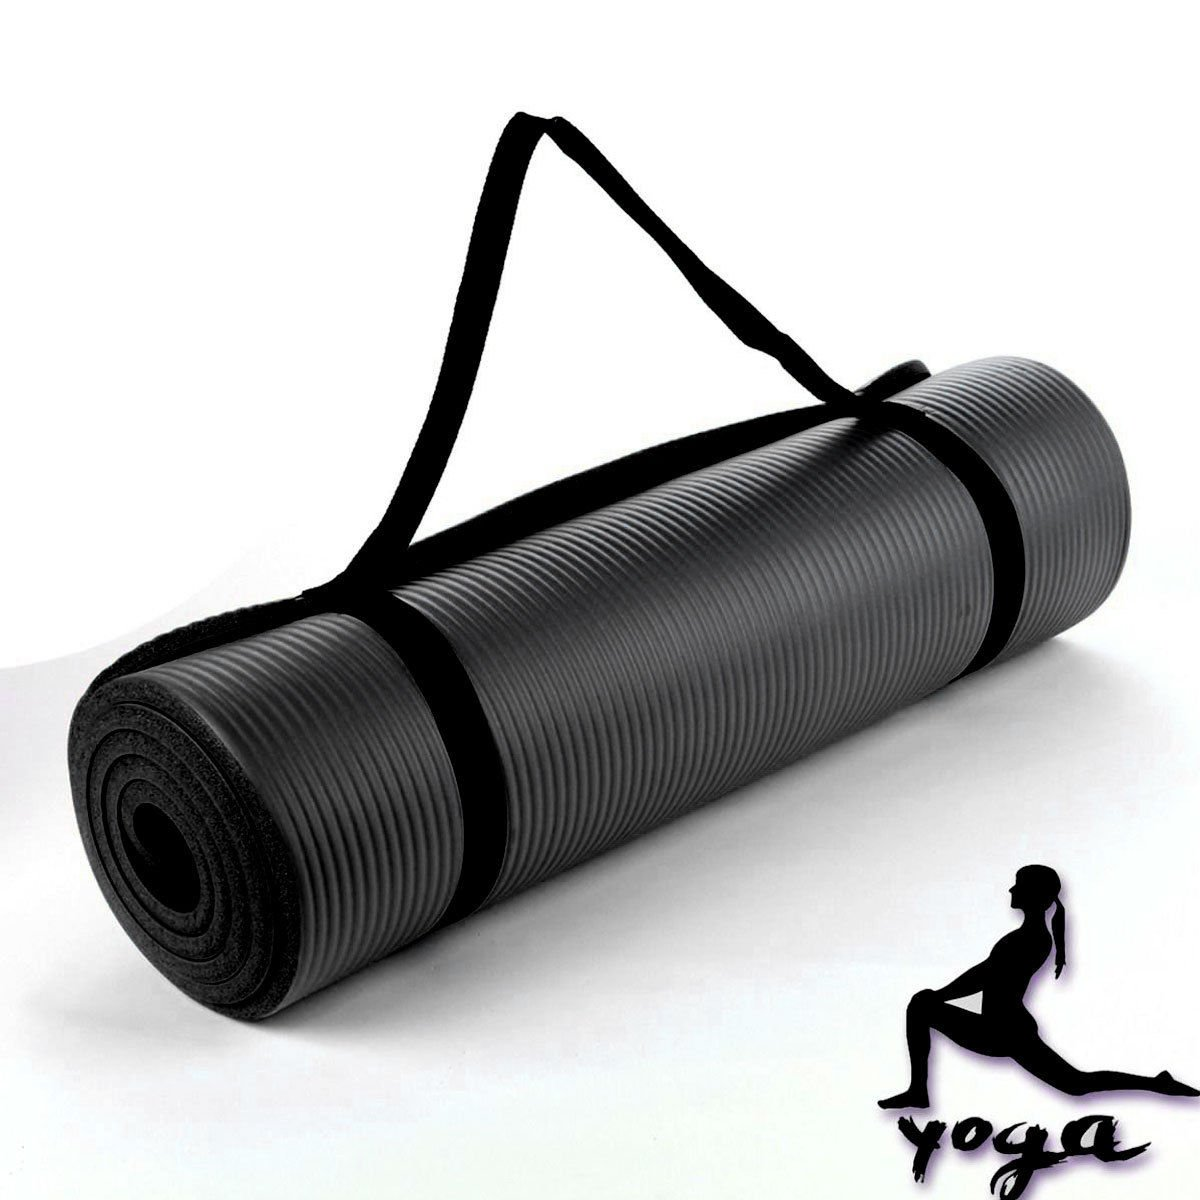 Lions 10mm Exercise Yoga Mat Pilates Physio Gym Camping Non Slip Carry Straps 180x60cm Black